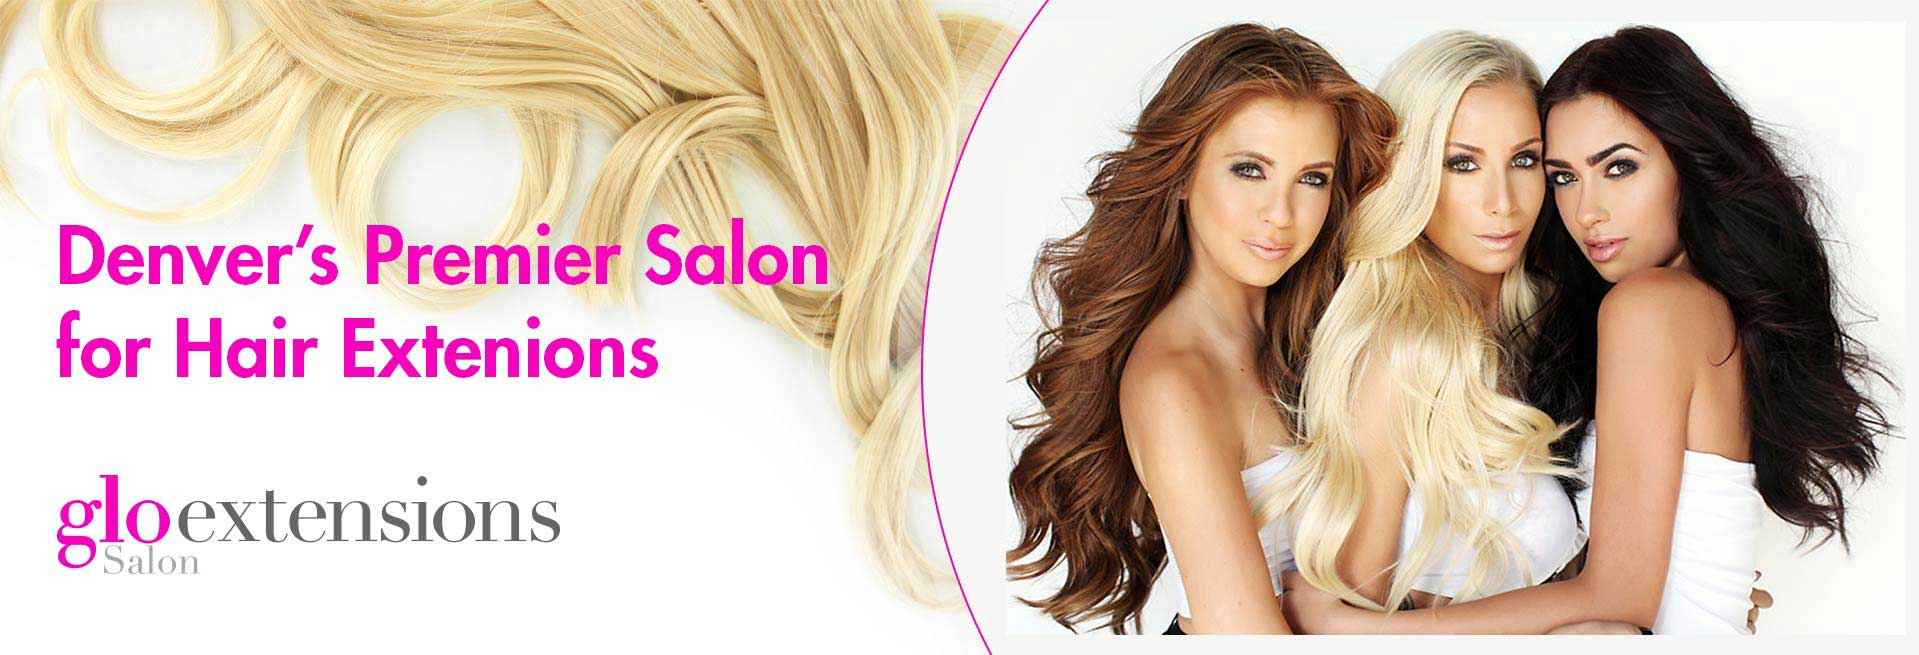 Extensions-hair-salon-denver